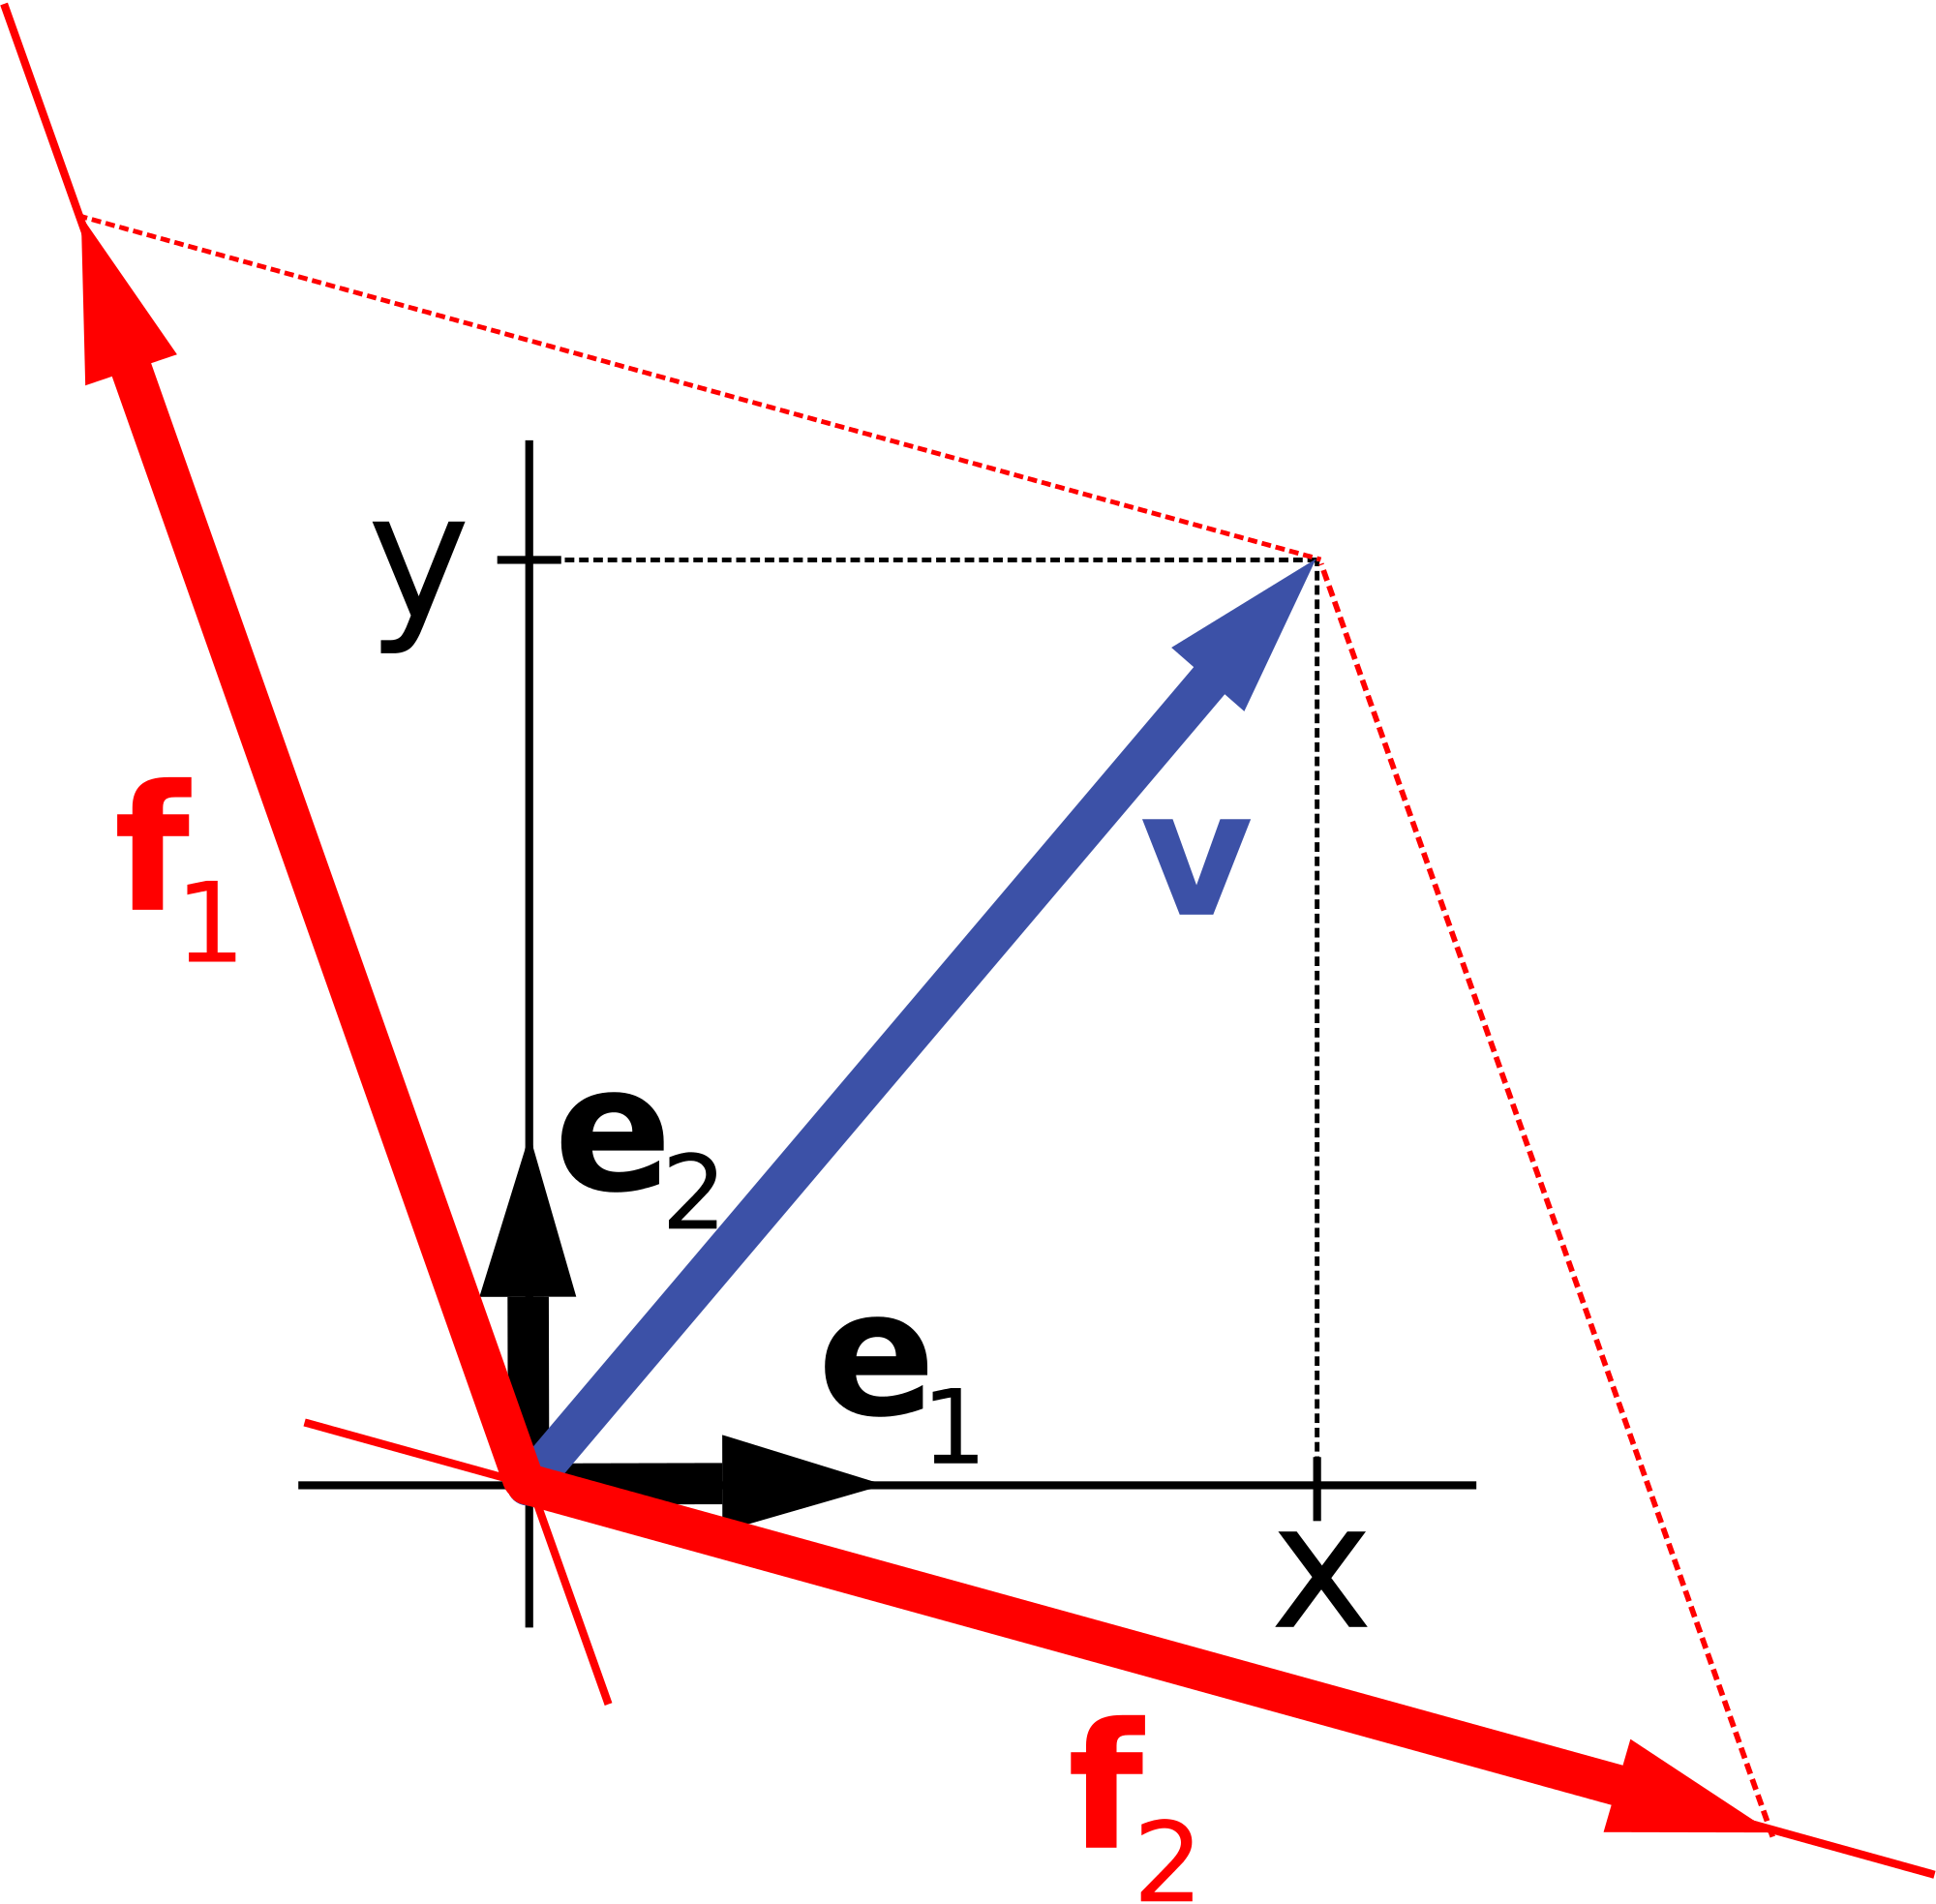 vector computer graphics programs are based on line drawing defined